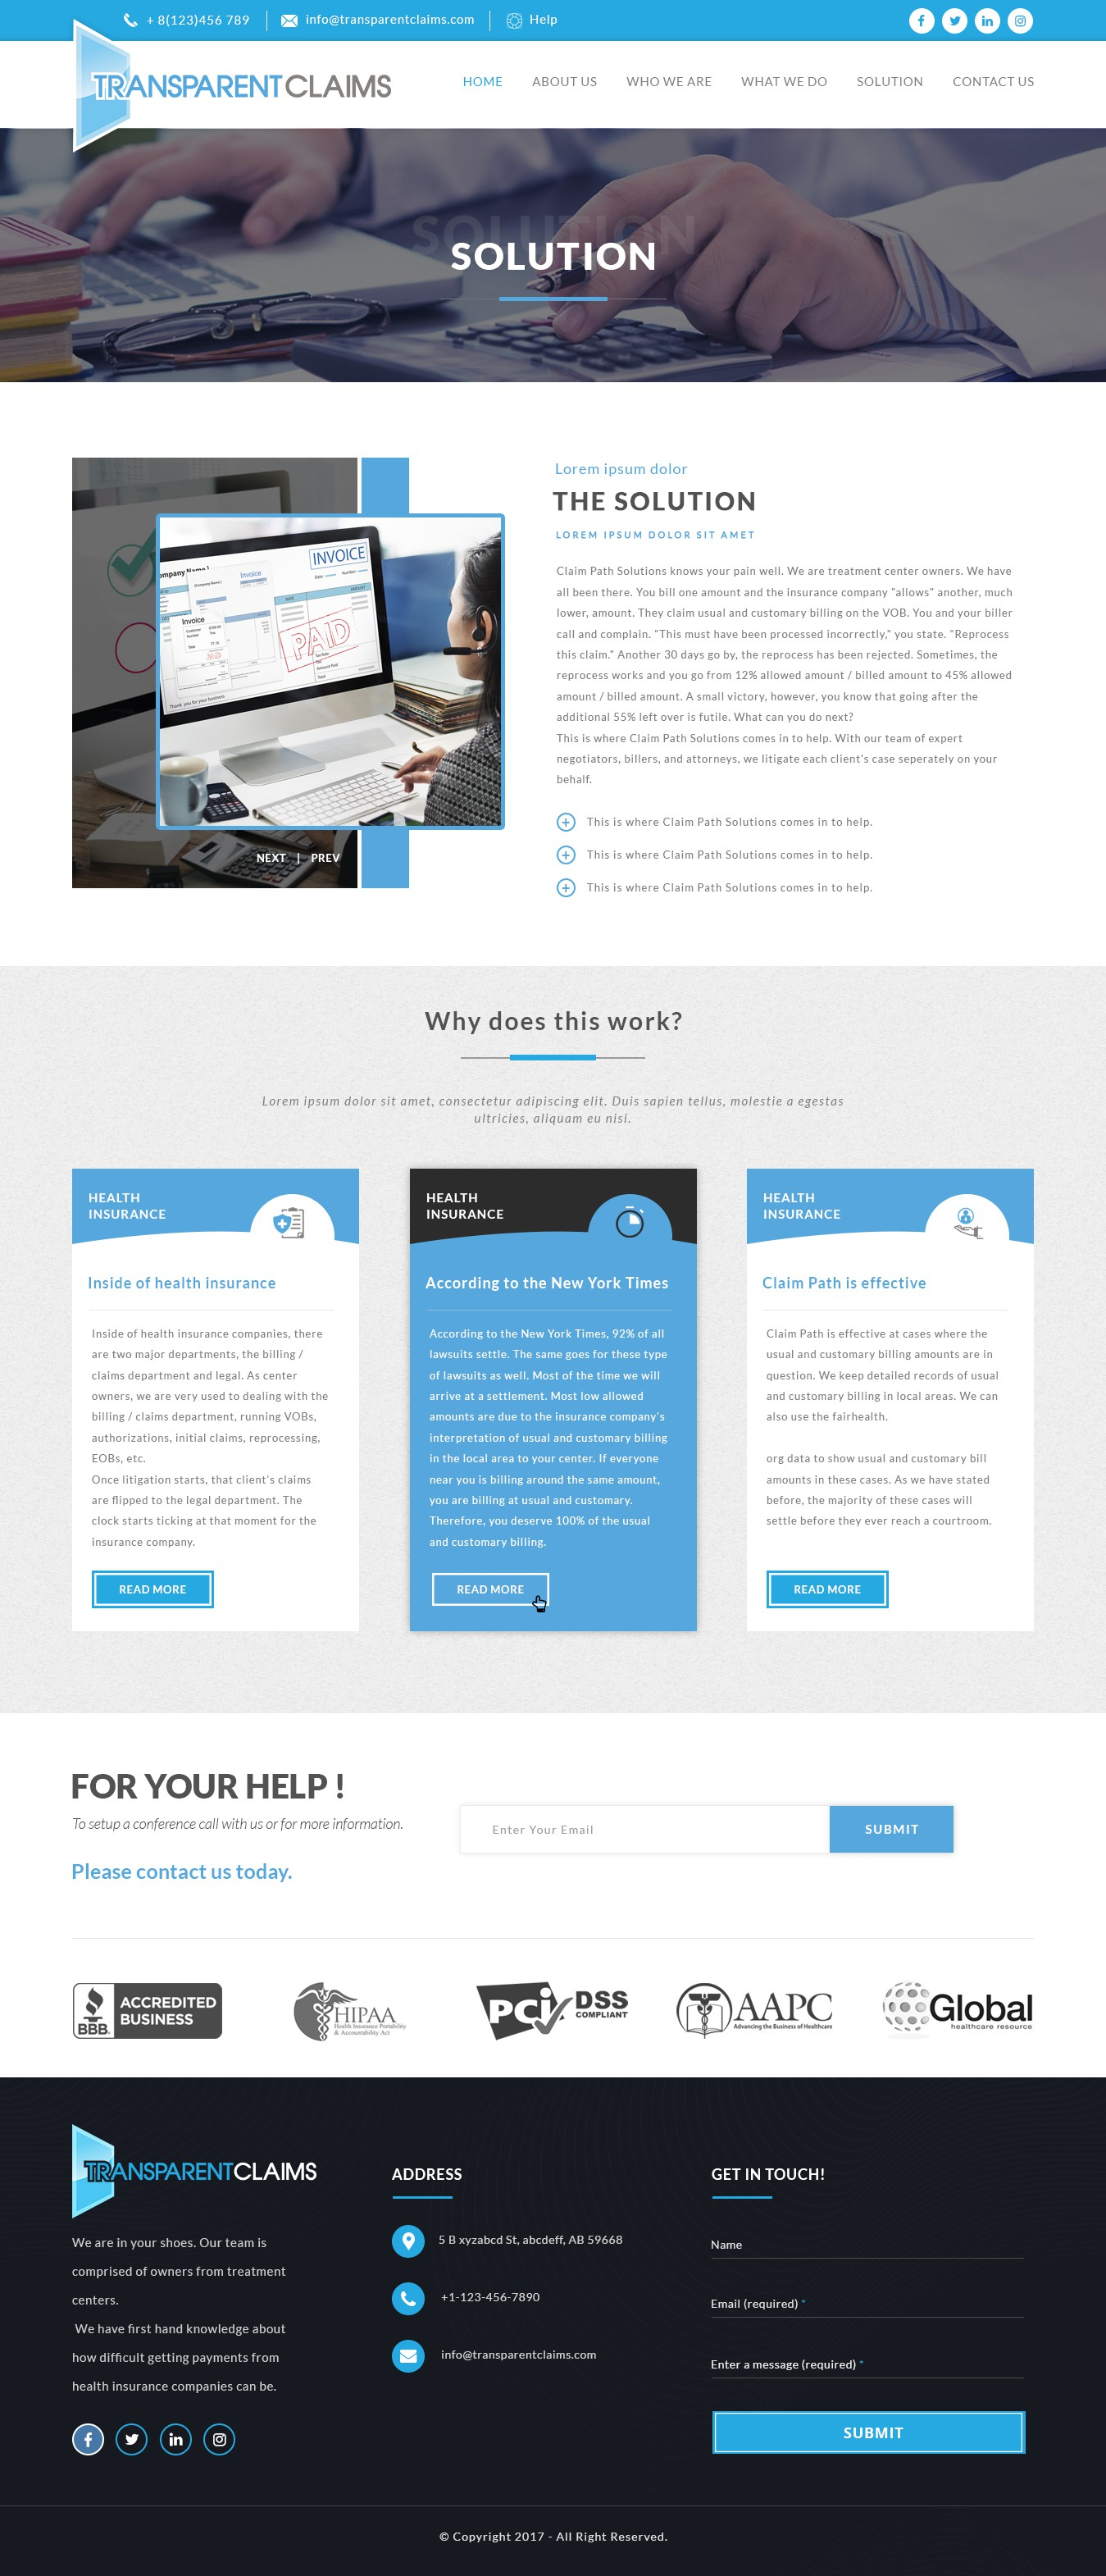 VERY MODERN, Medical Billing and Collection Company Home Page and Internal Page Design Contest